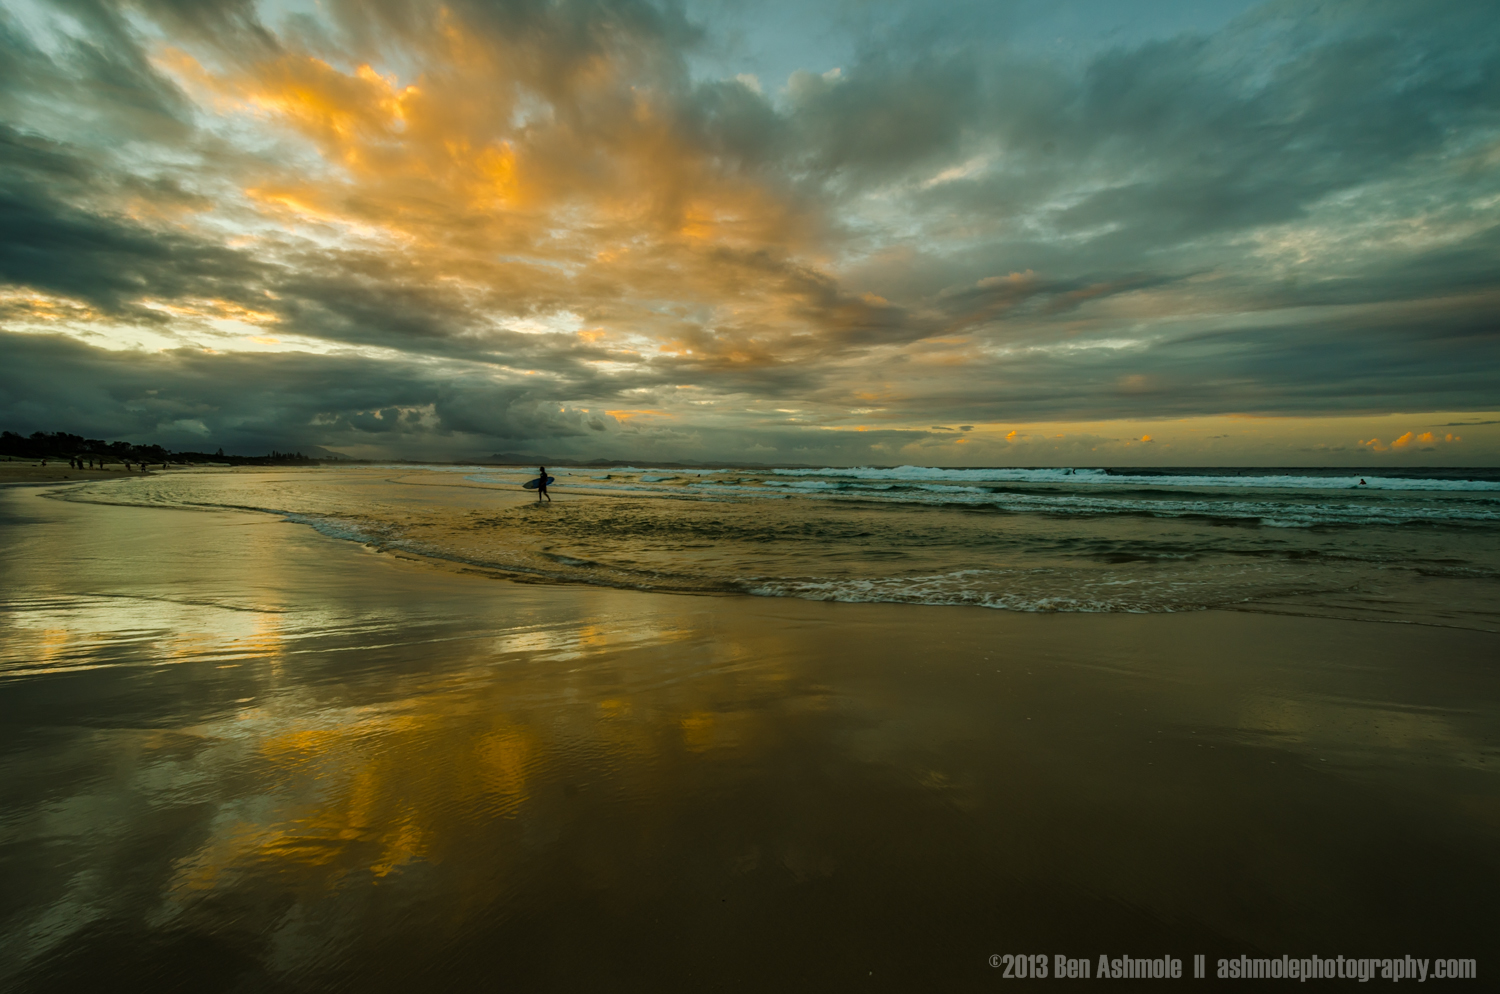 The Lone Surfer, Byron Bay, New South Wales, Australia